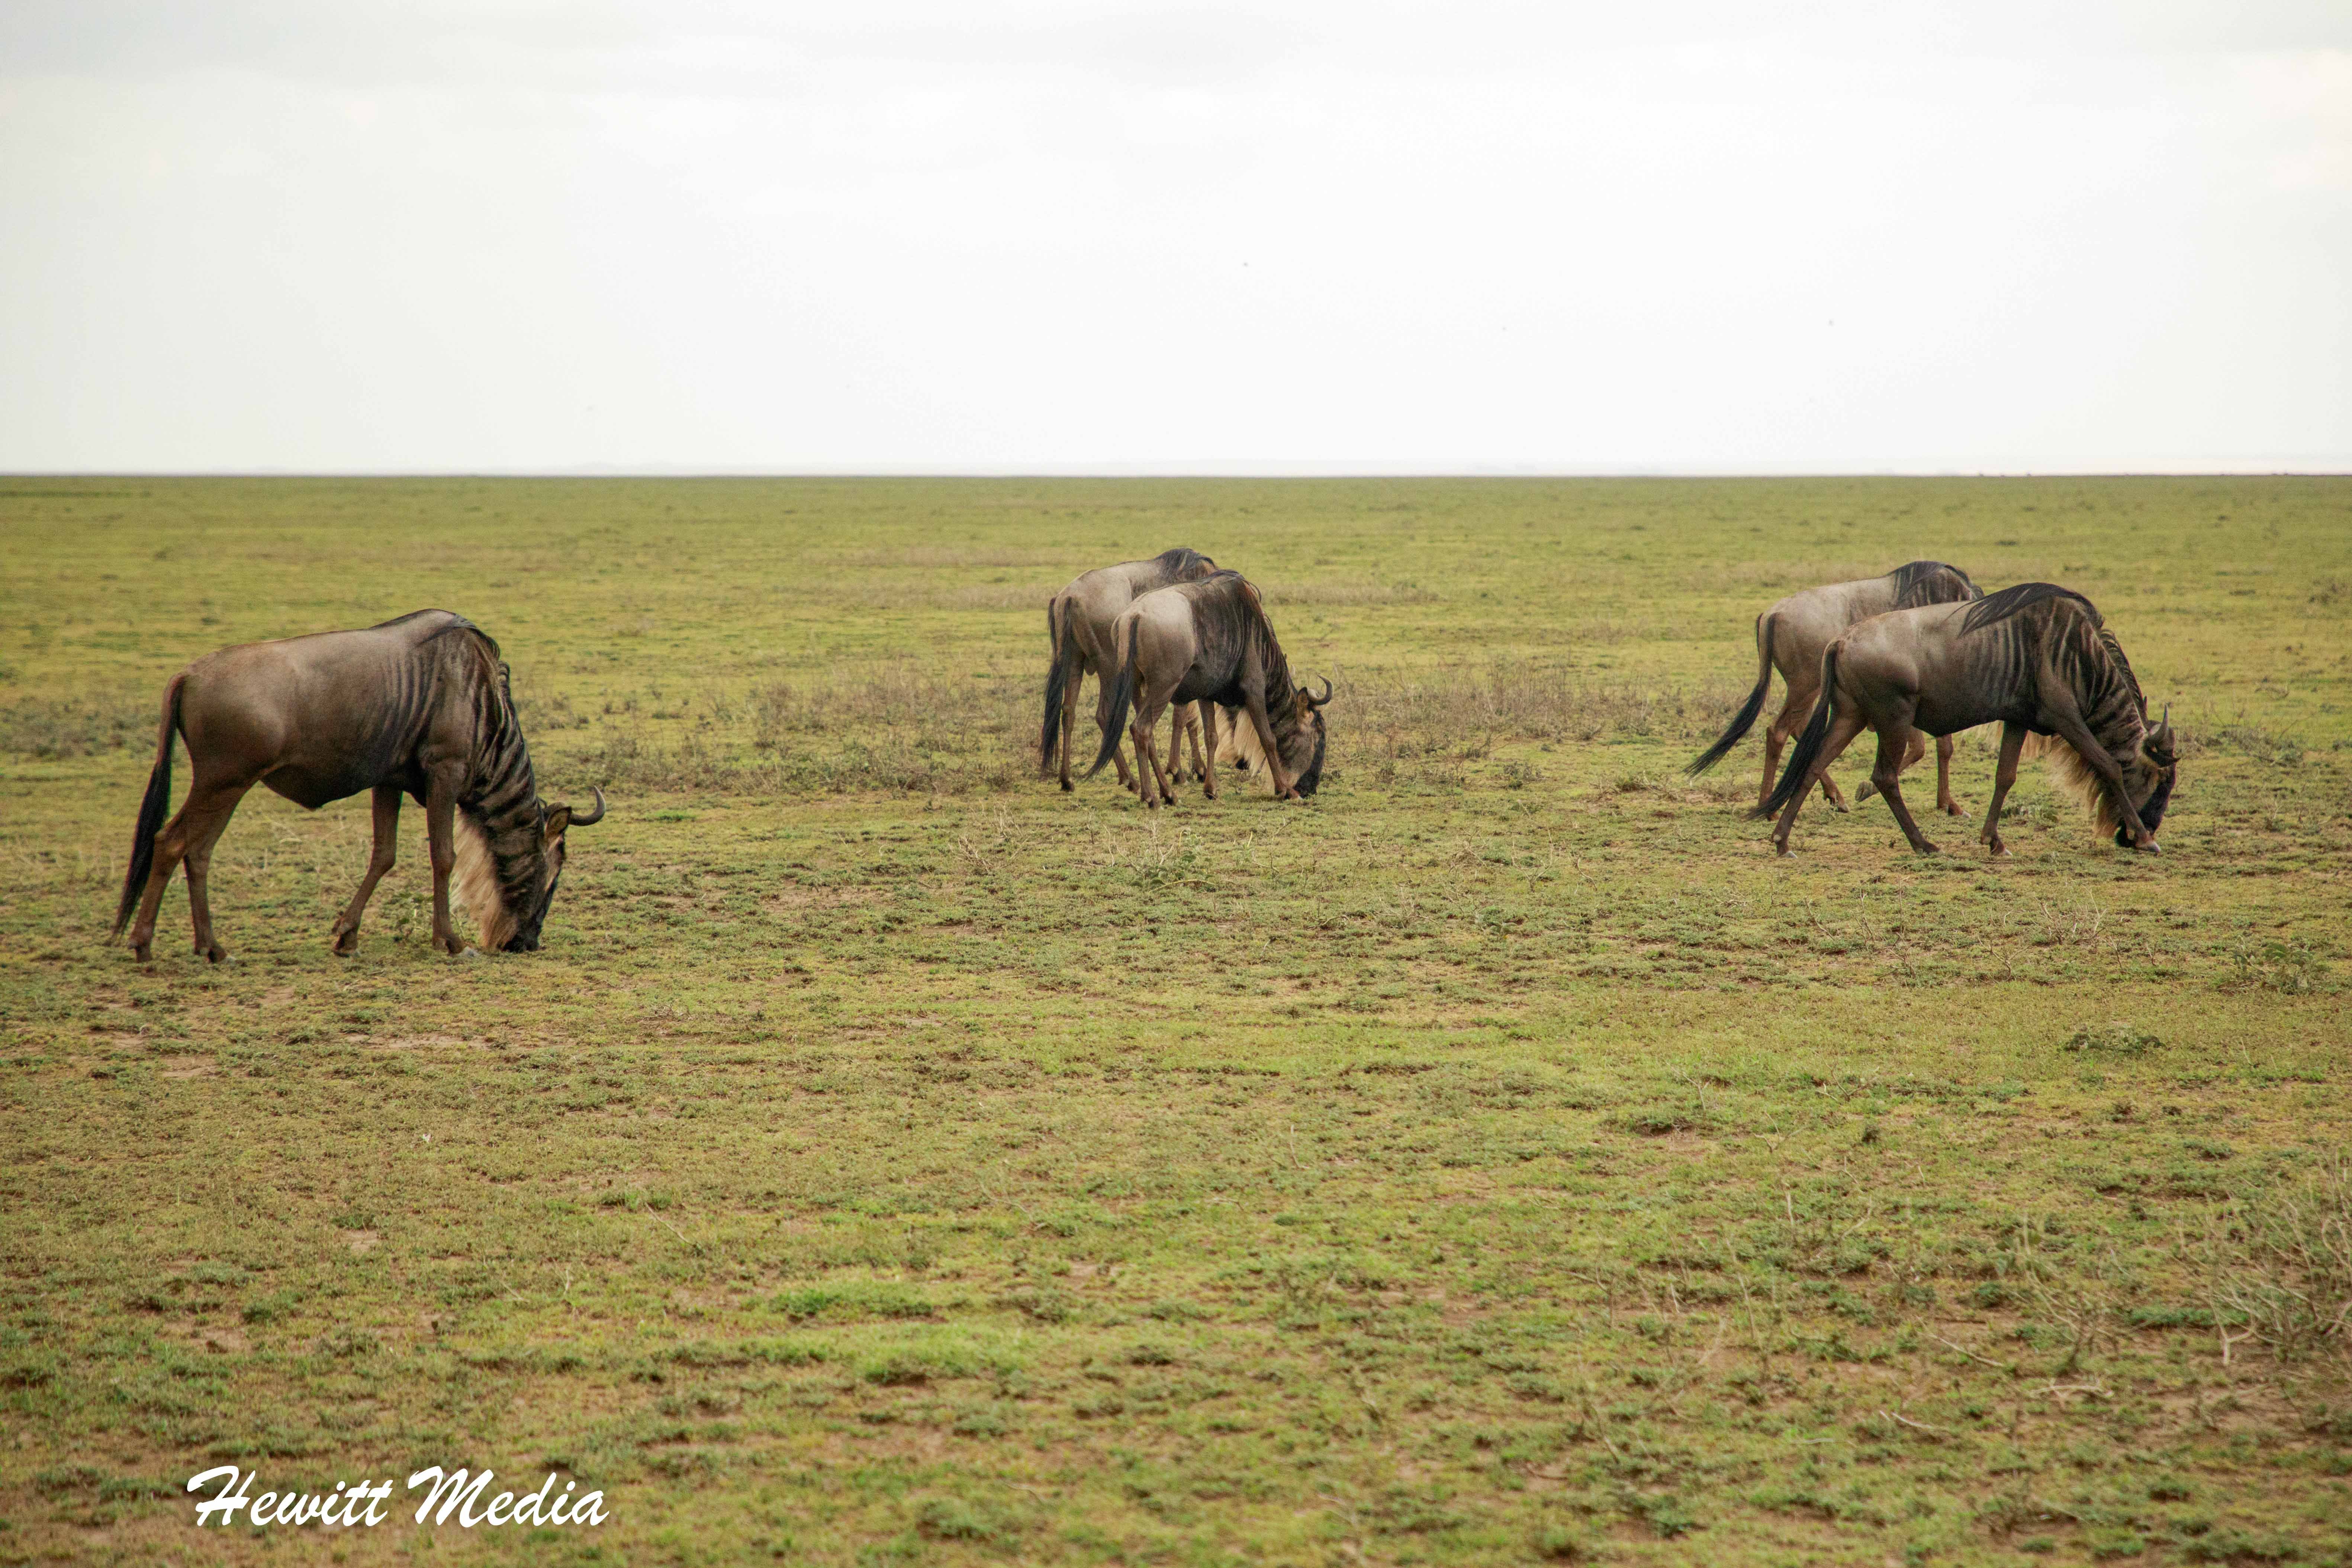 Wildebeest graze in the Serengeti National Park